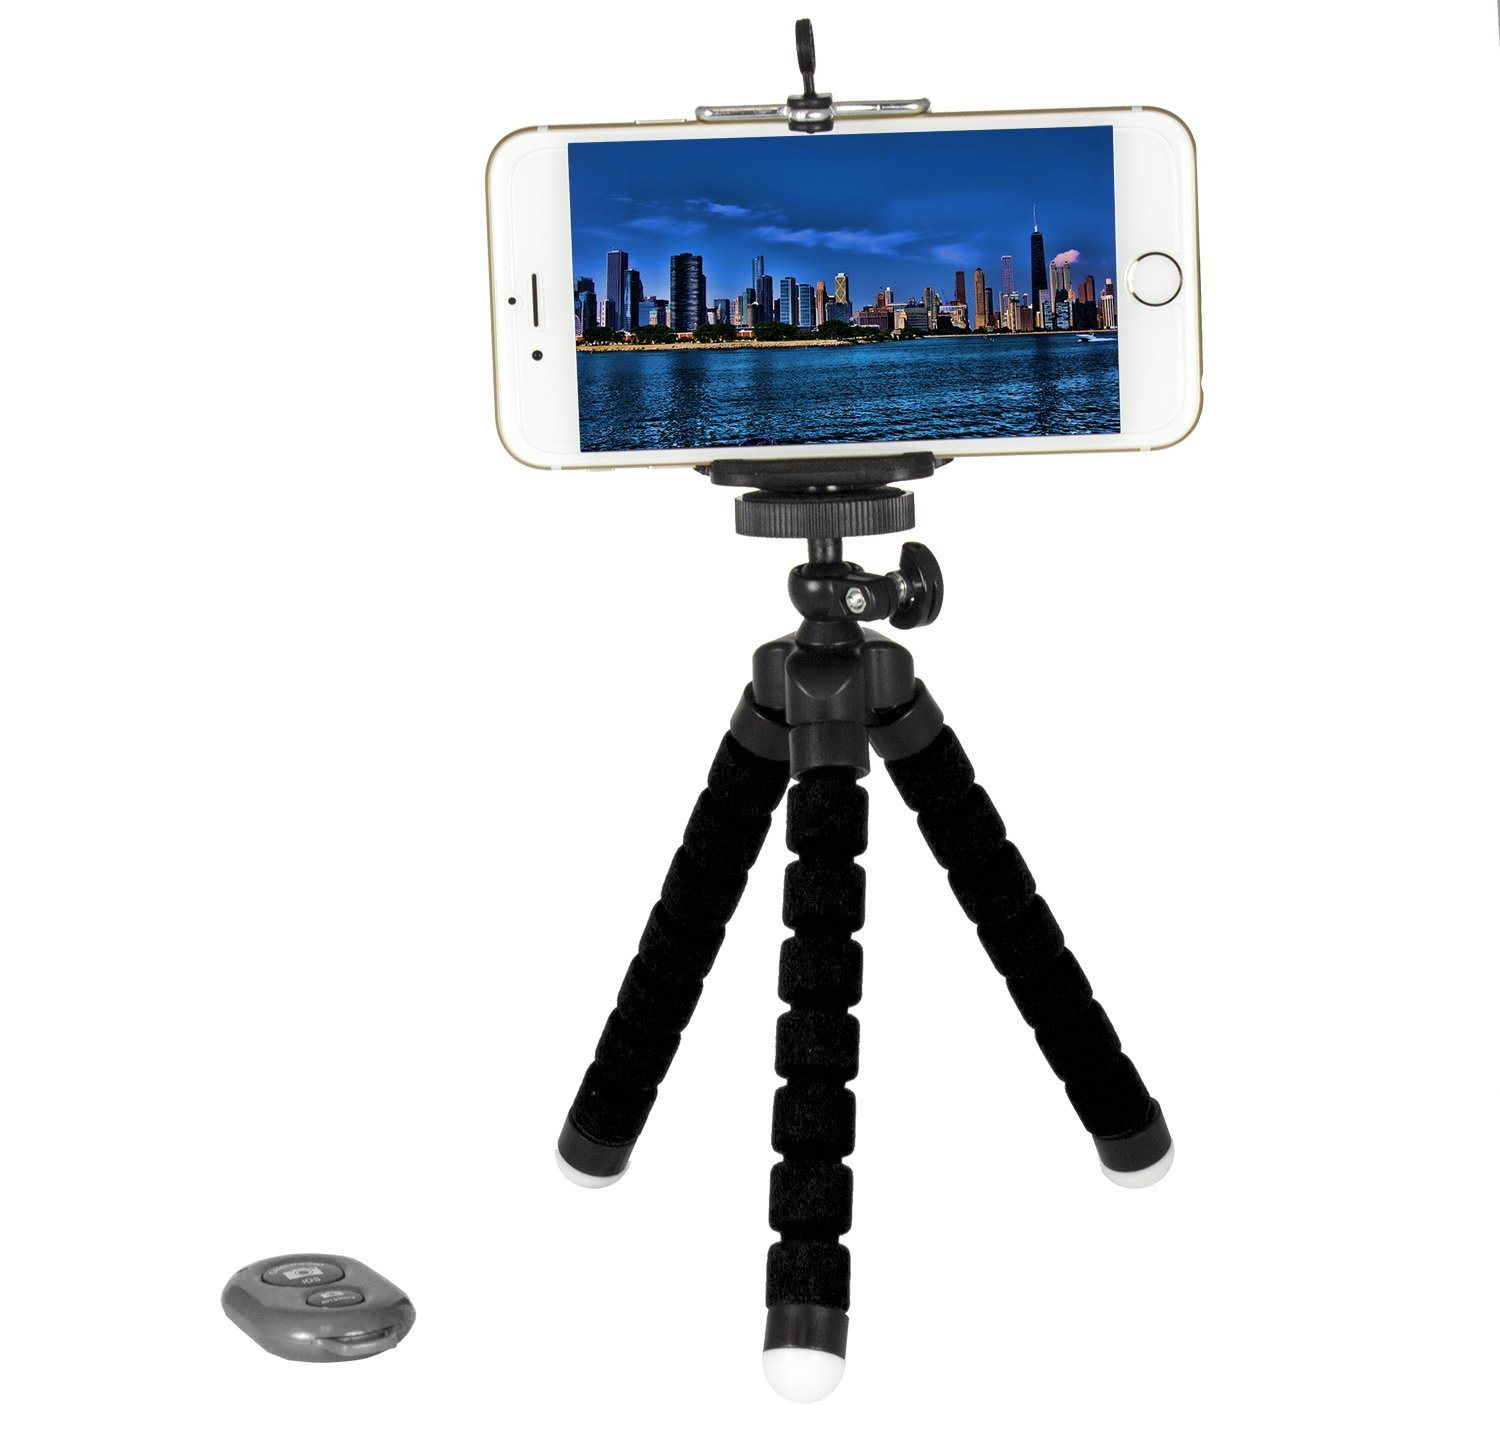 soundlogic xt 3 in 1 selfie tripod kit with wireless bluetooth shutter remote r pda accessories. Black Bedroom Furniture Sets. Home Design Ideas